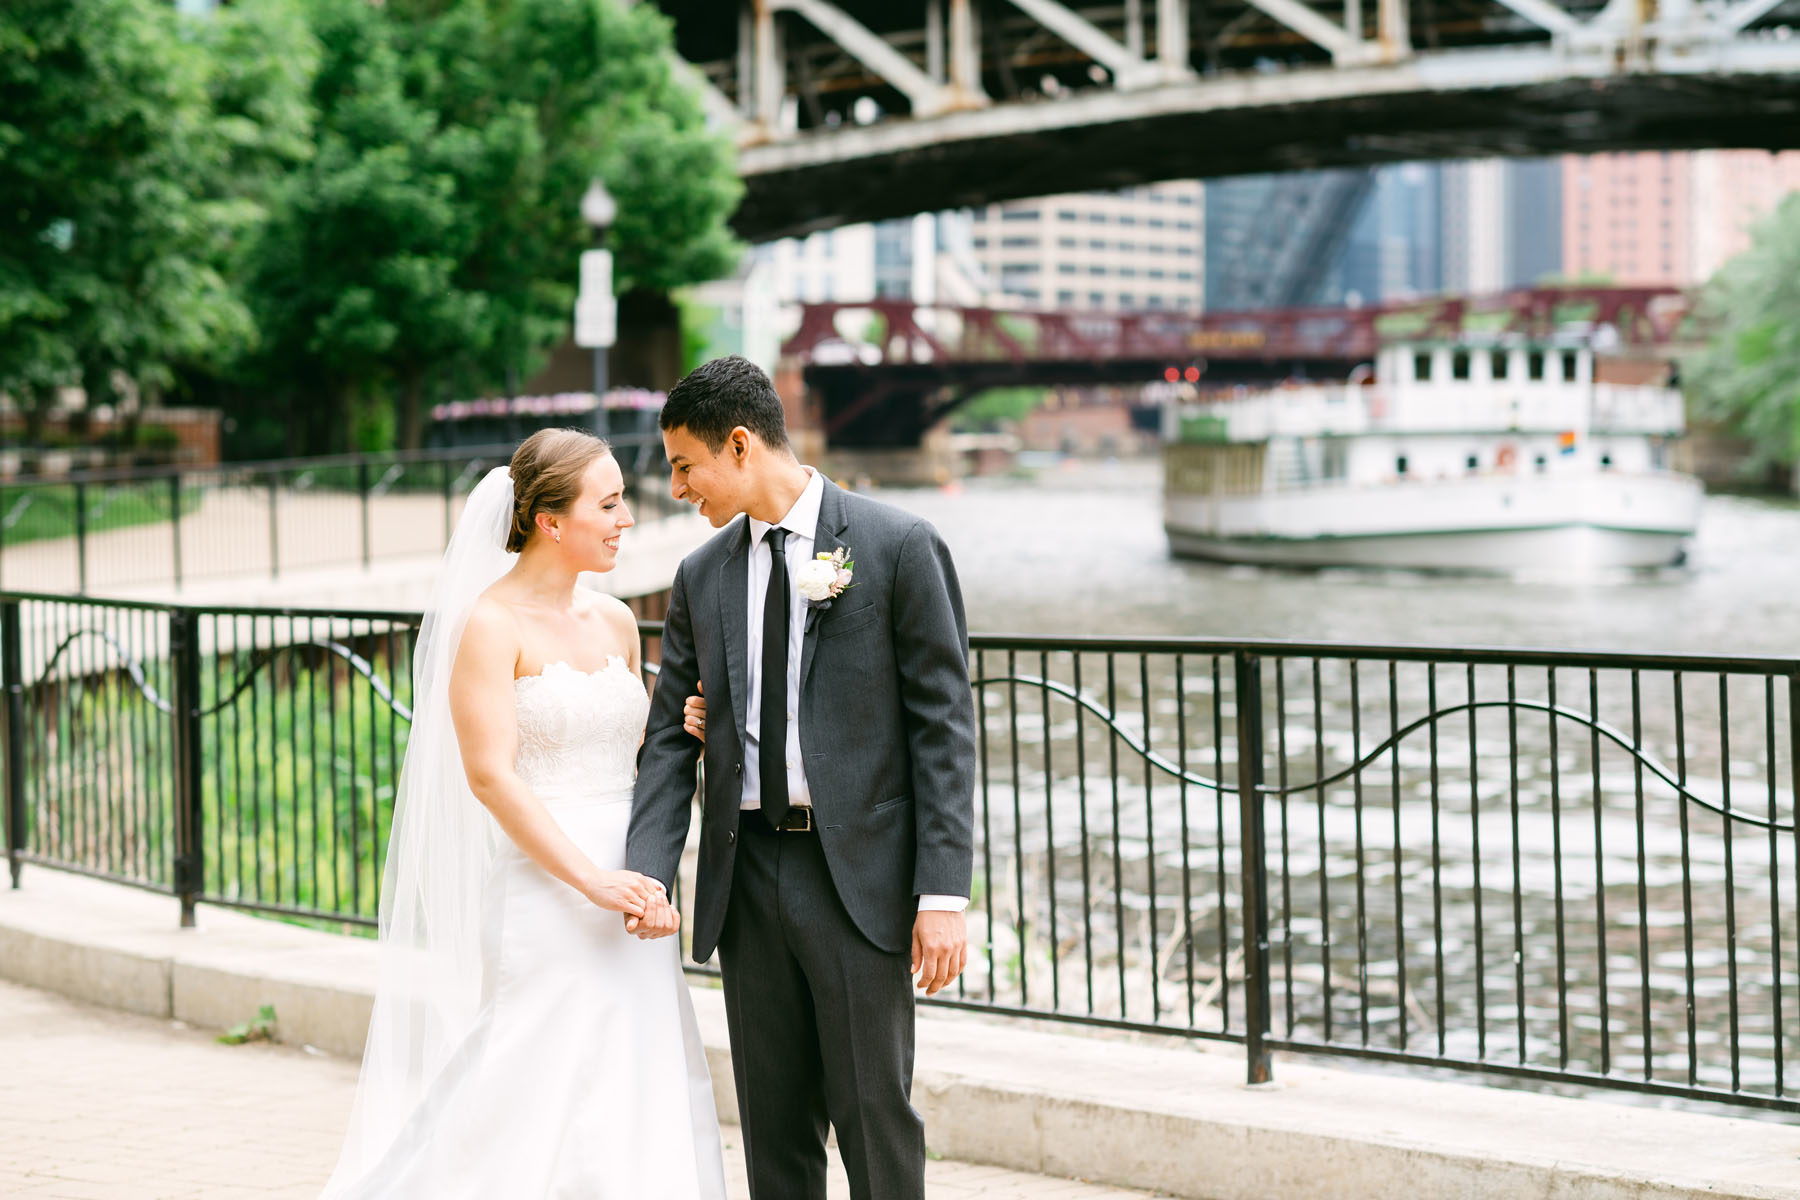 Montgomery Ward Park Wedding